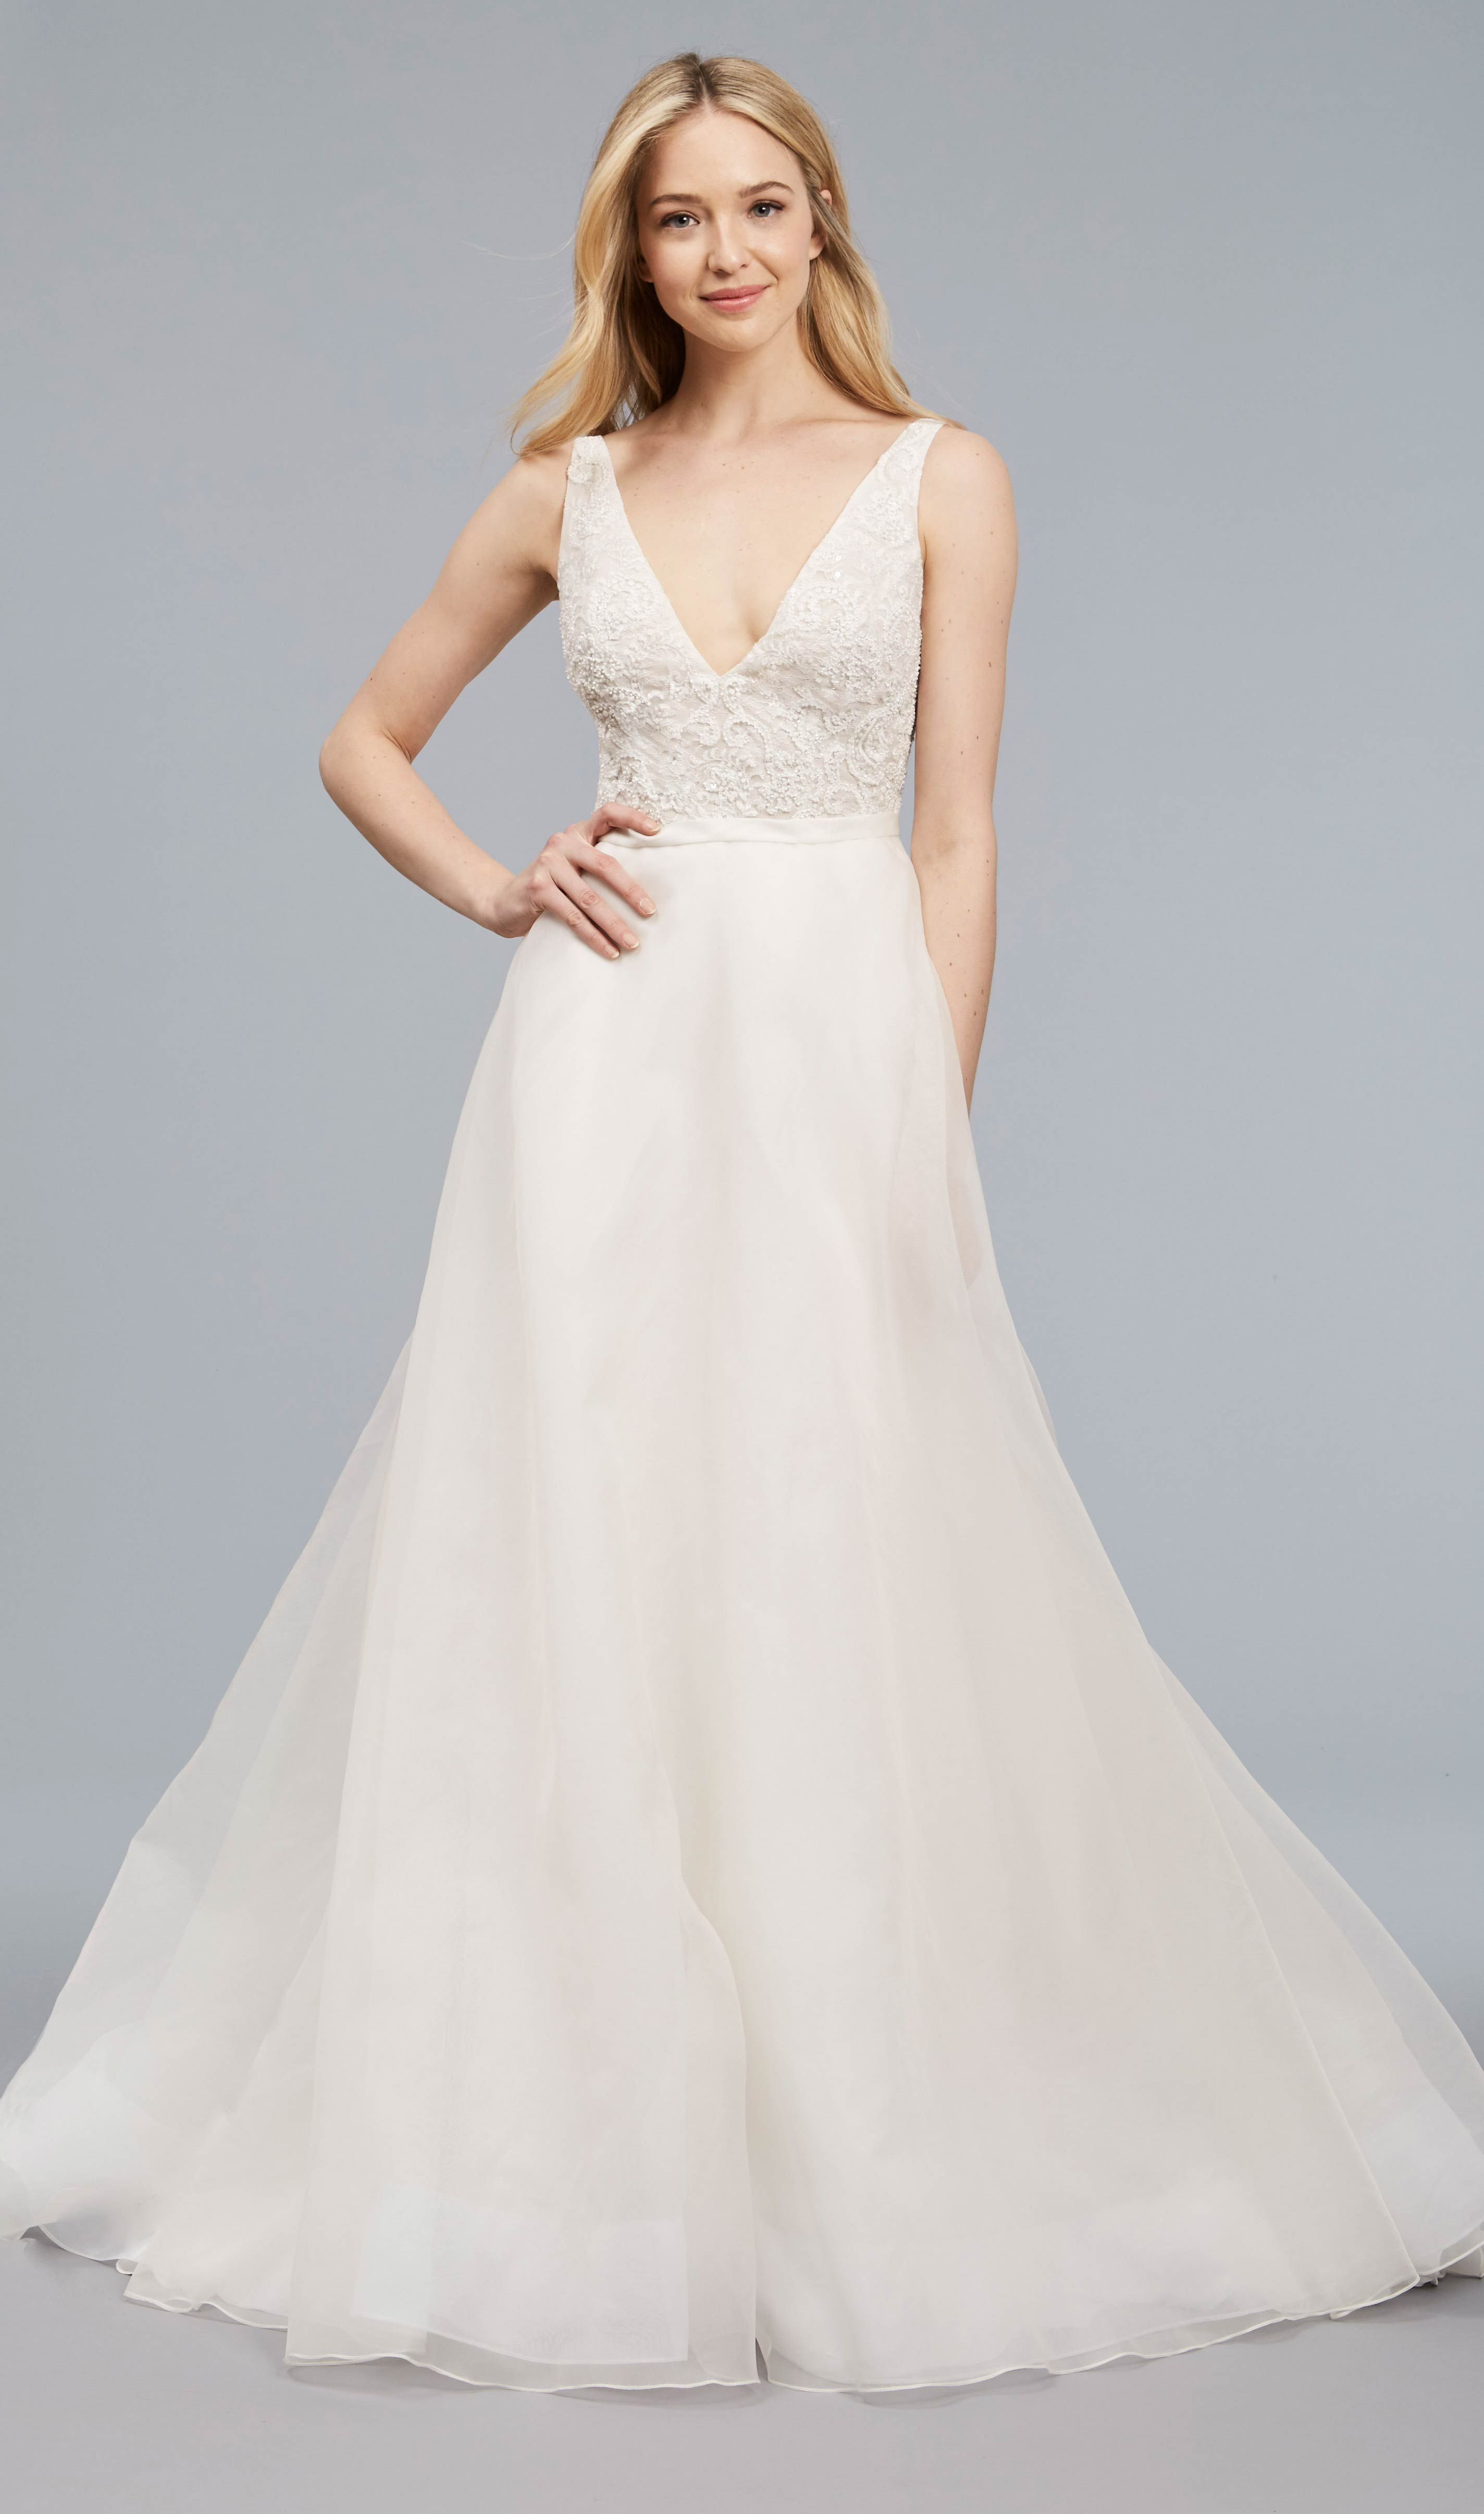 Blue willow jean wedding dresses pinterest wedding watters wedding dresses ombrellifo Image collections